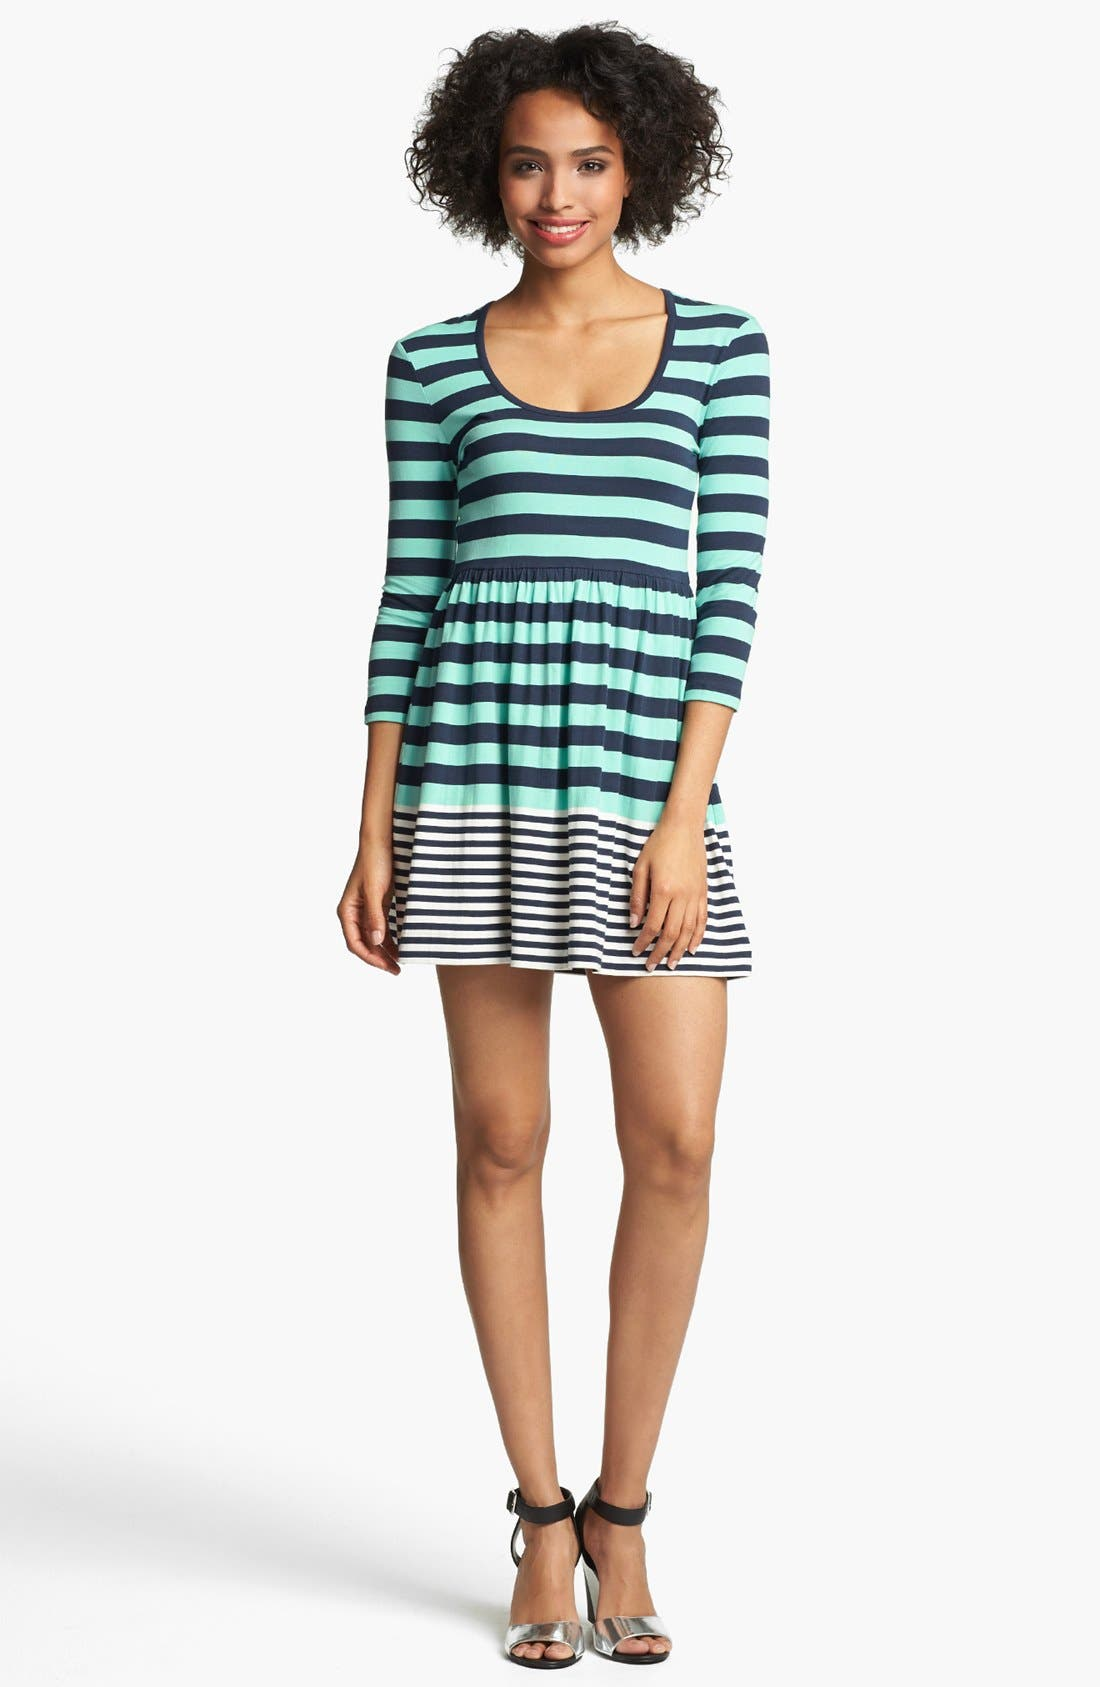 Alternate Image 1 Selected - French Connection 'Boulevard' Stripe Fit & Flare Dress